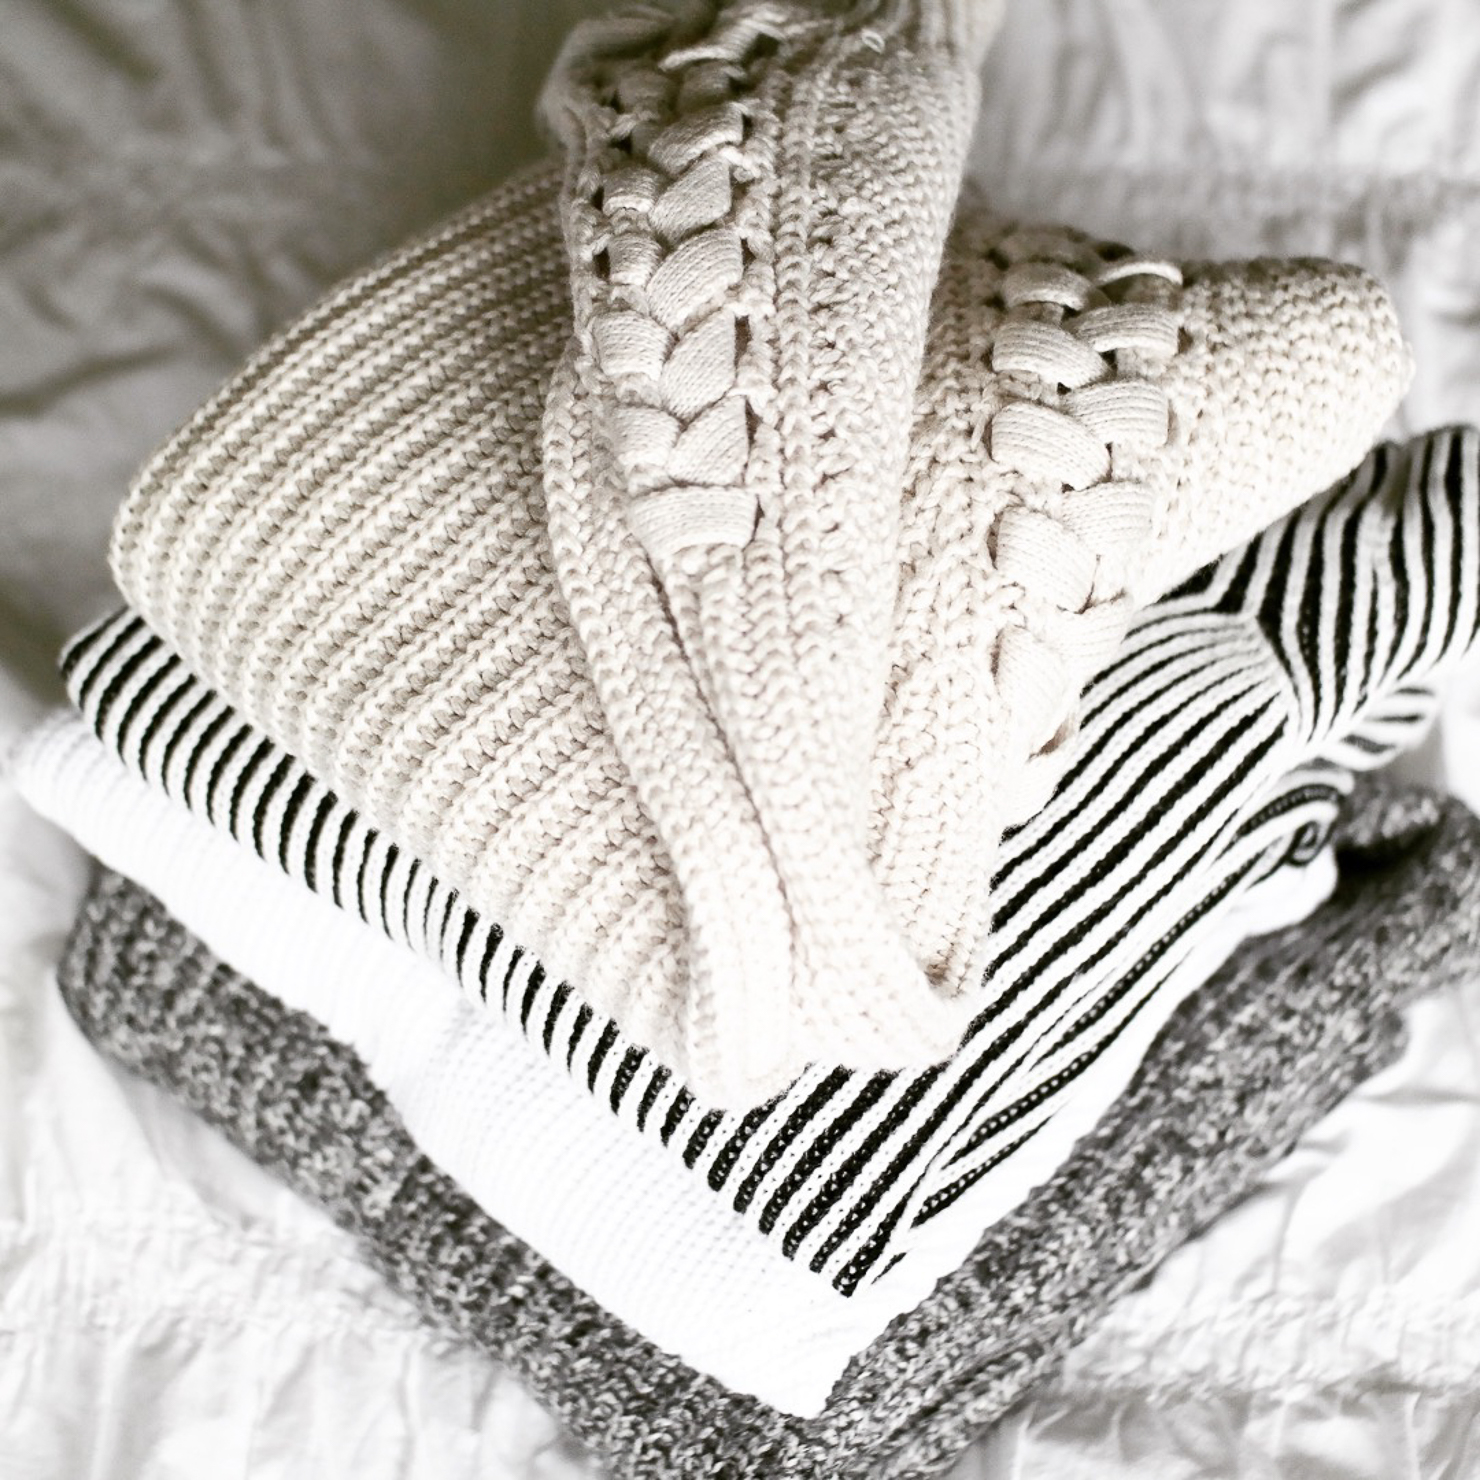 stack-of-cozy-sweaters-on-bed